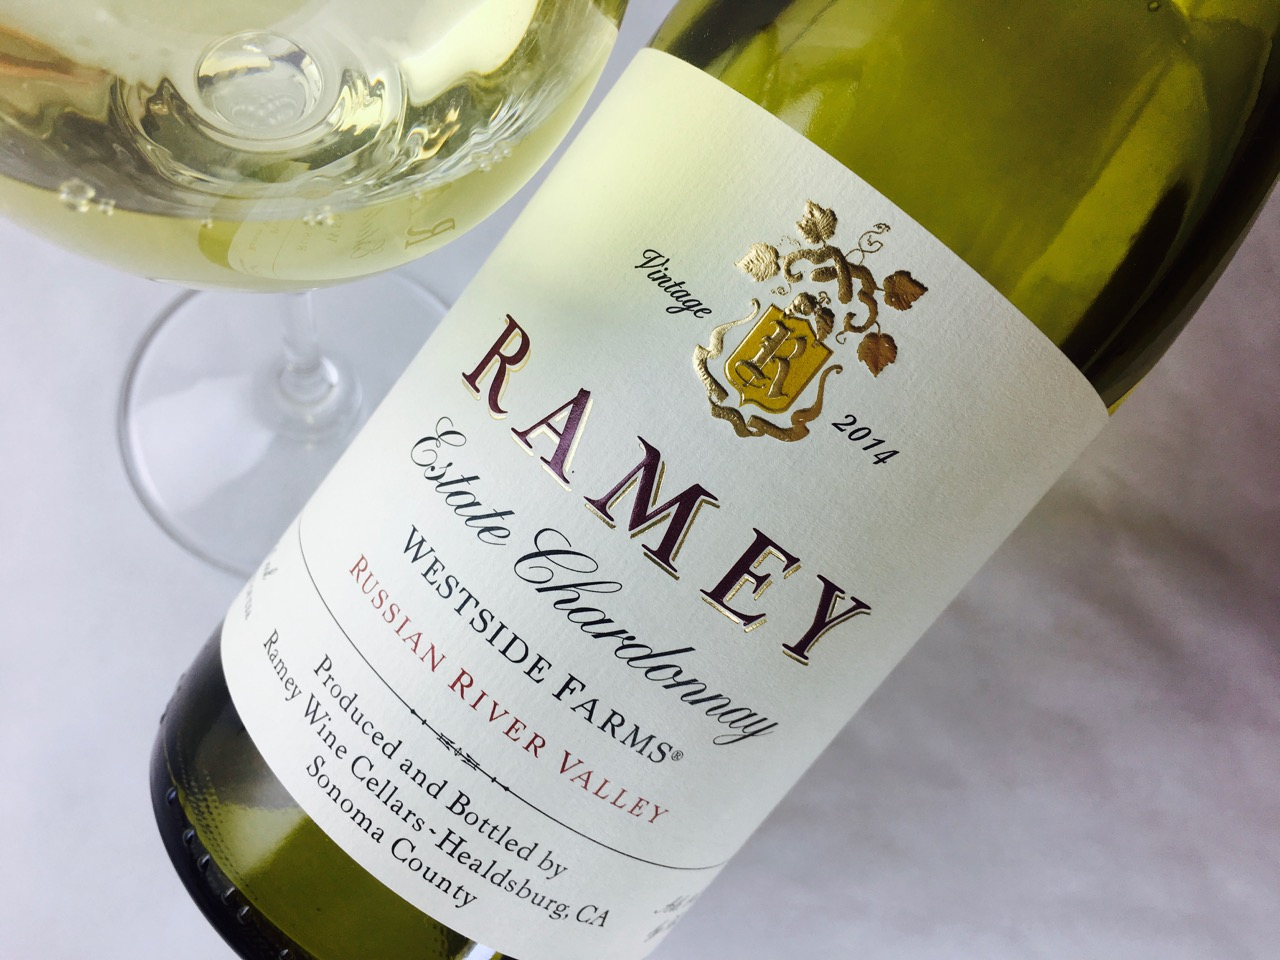 2014 Ramey Chardonnay Westside Farms Russian River Valley